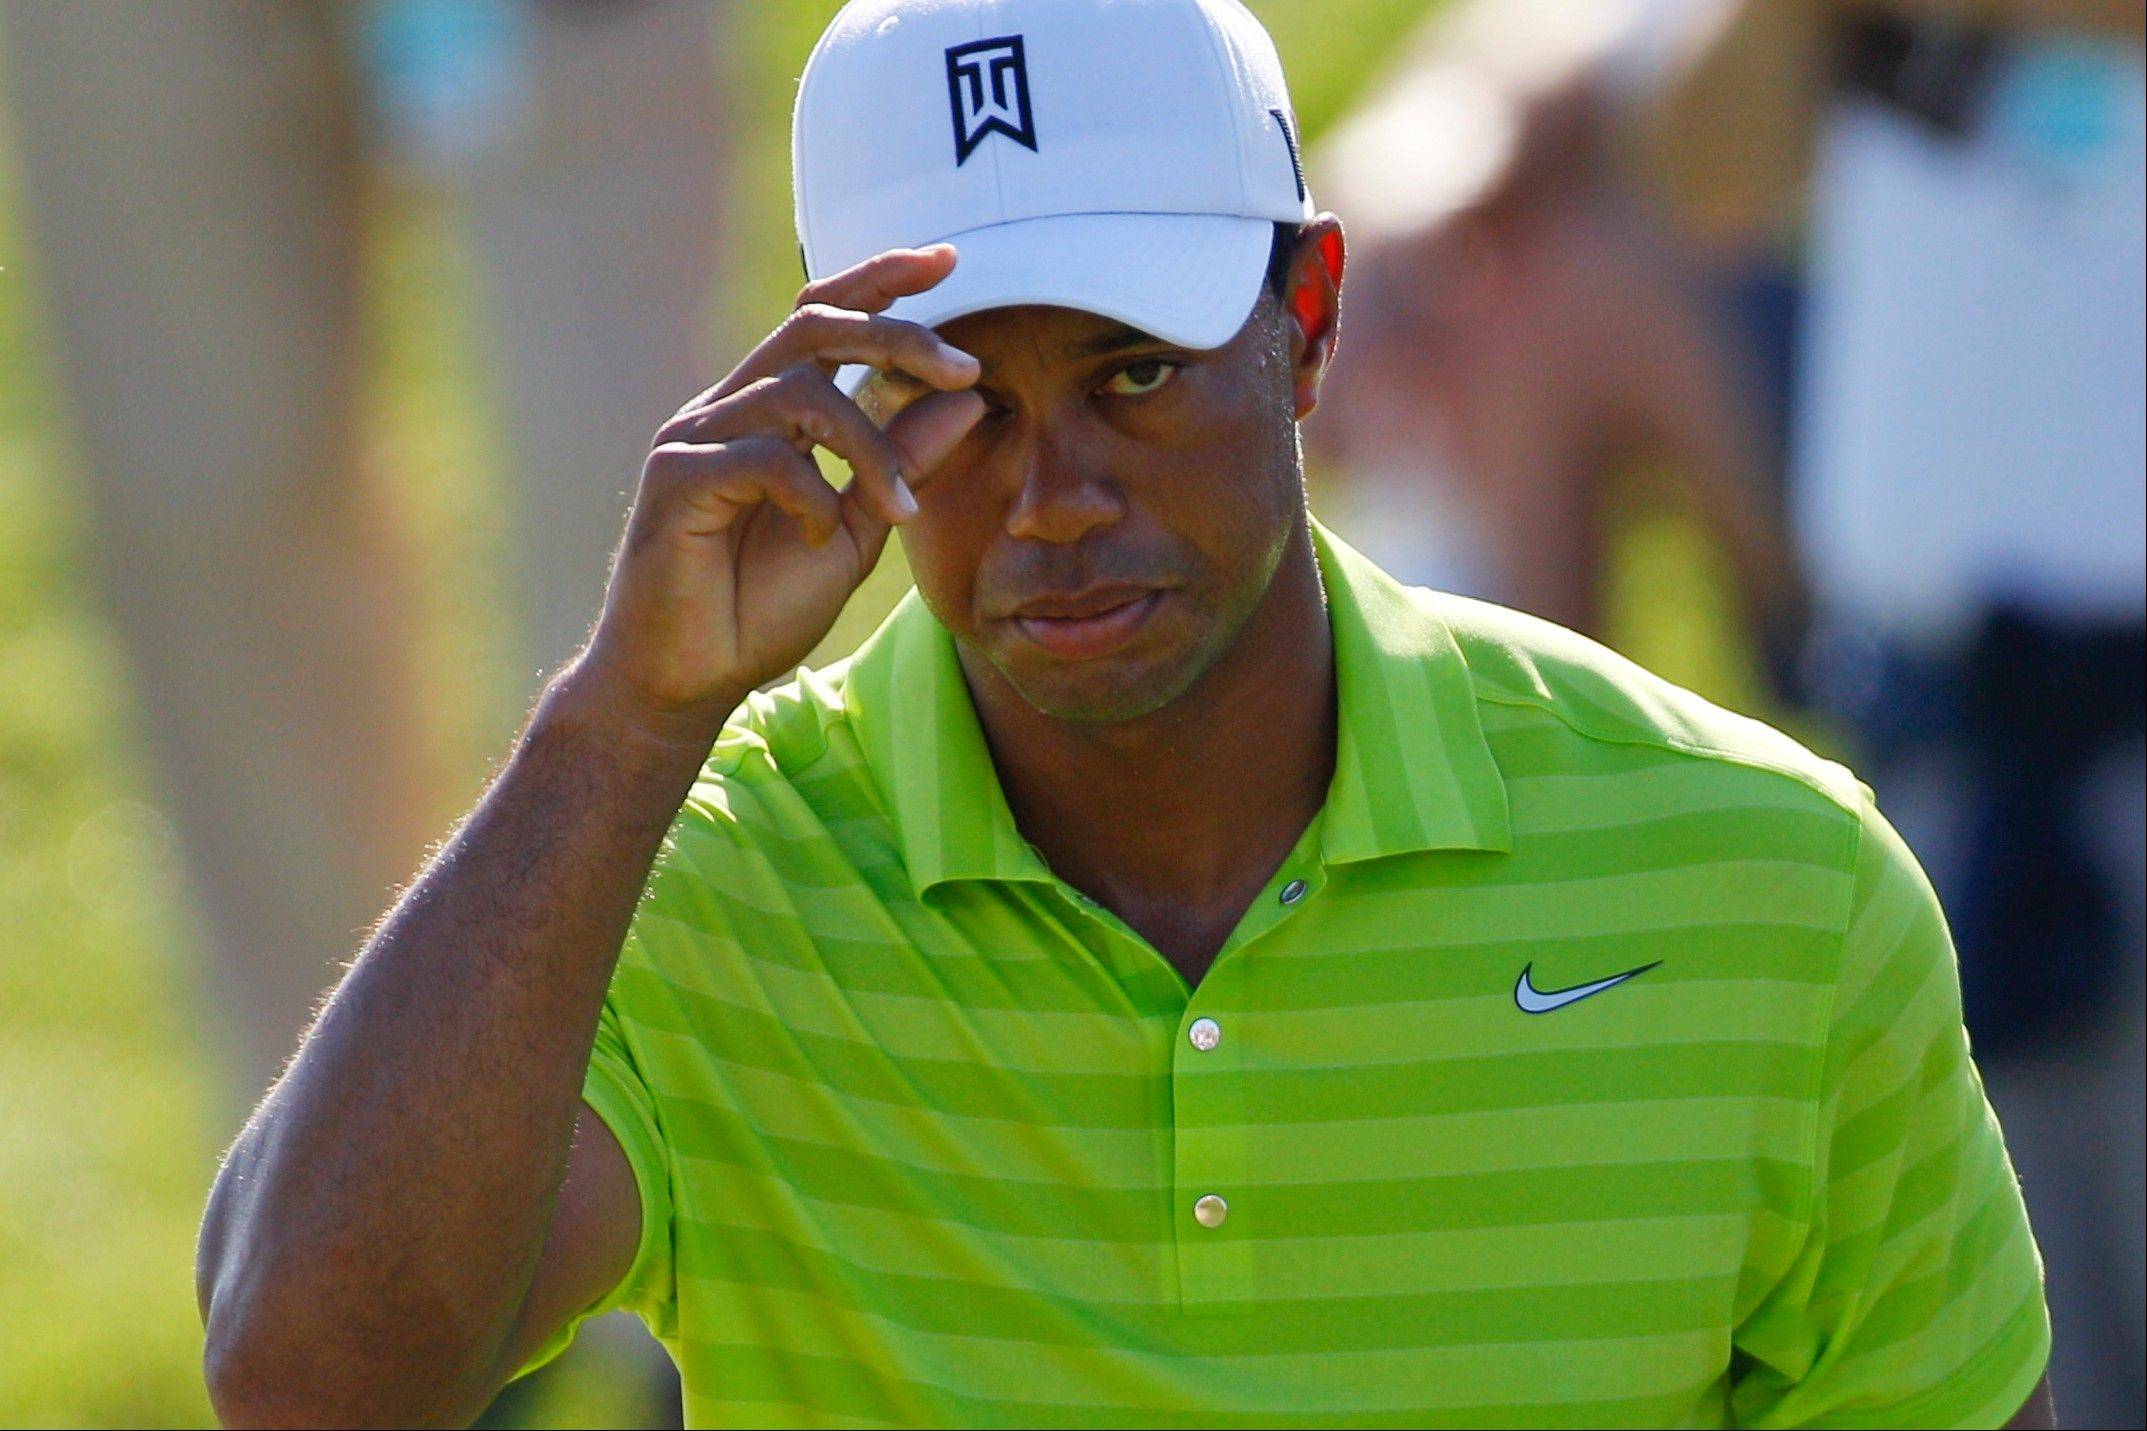 Tiger Woods tips his hat to the gallery on the 13th hole Thursday during the first round of the PGA Championship.